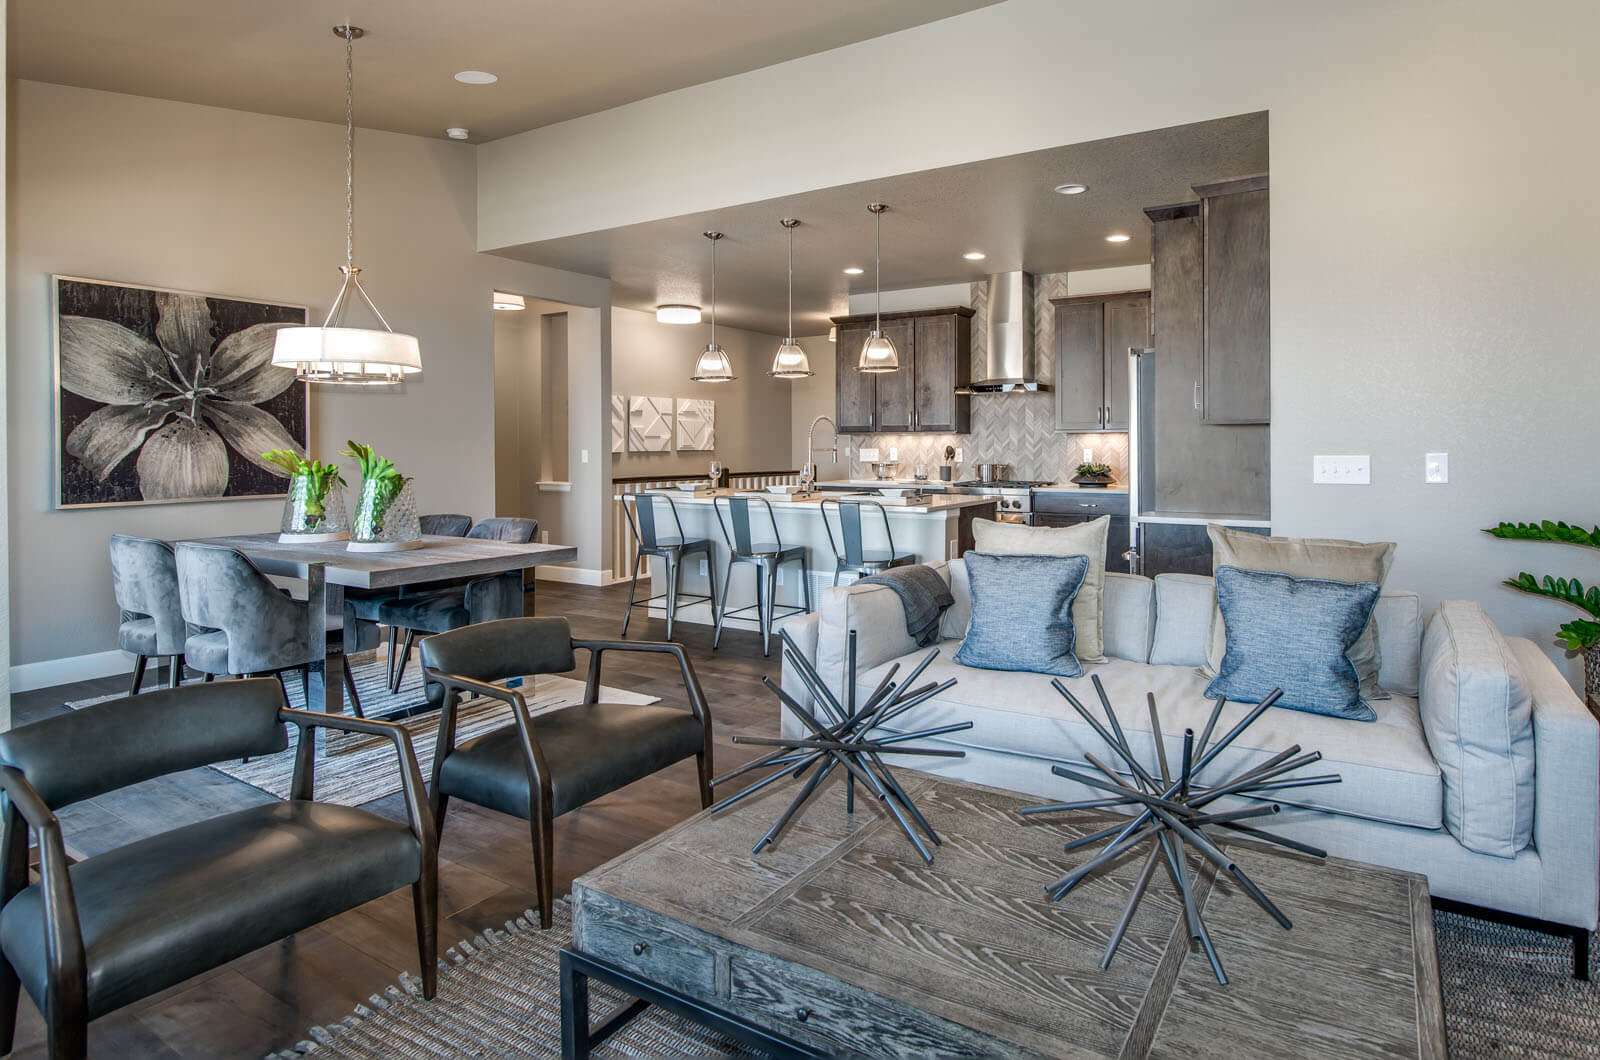 New Denver  Model Home Willow in Lincoln Creek, located at 11805 Barrentine Loop, Parker, CO Built By Cardel Homes Denver